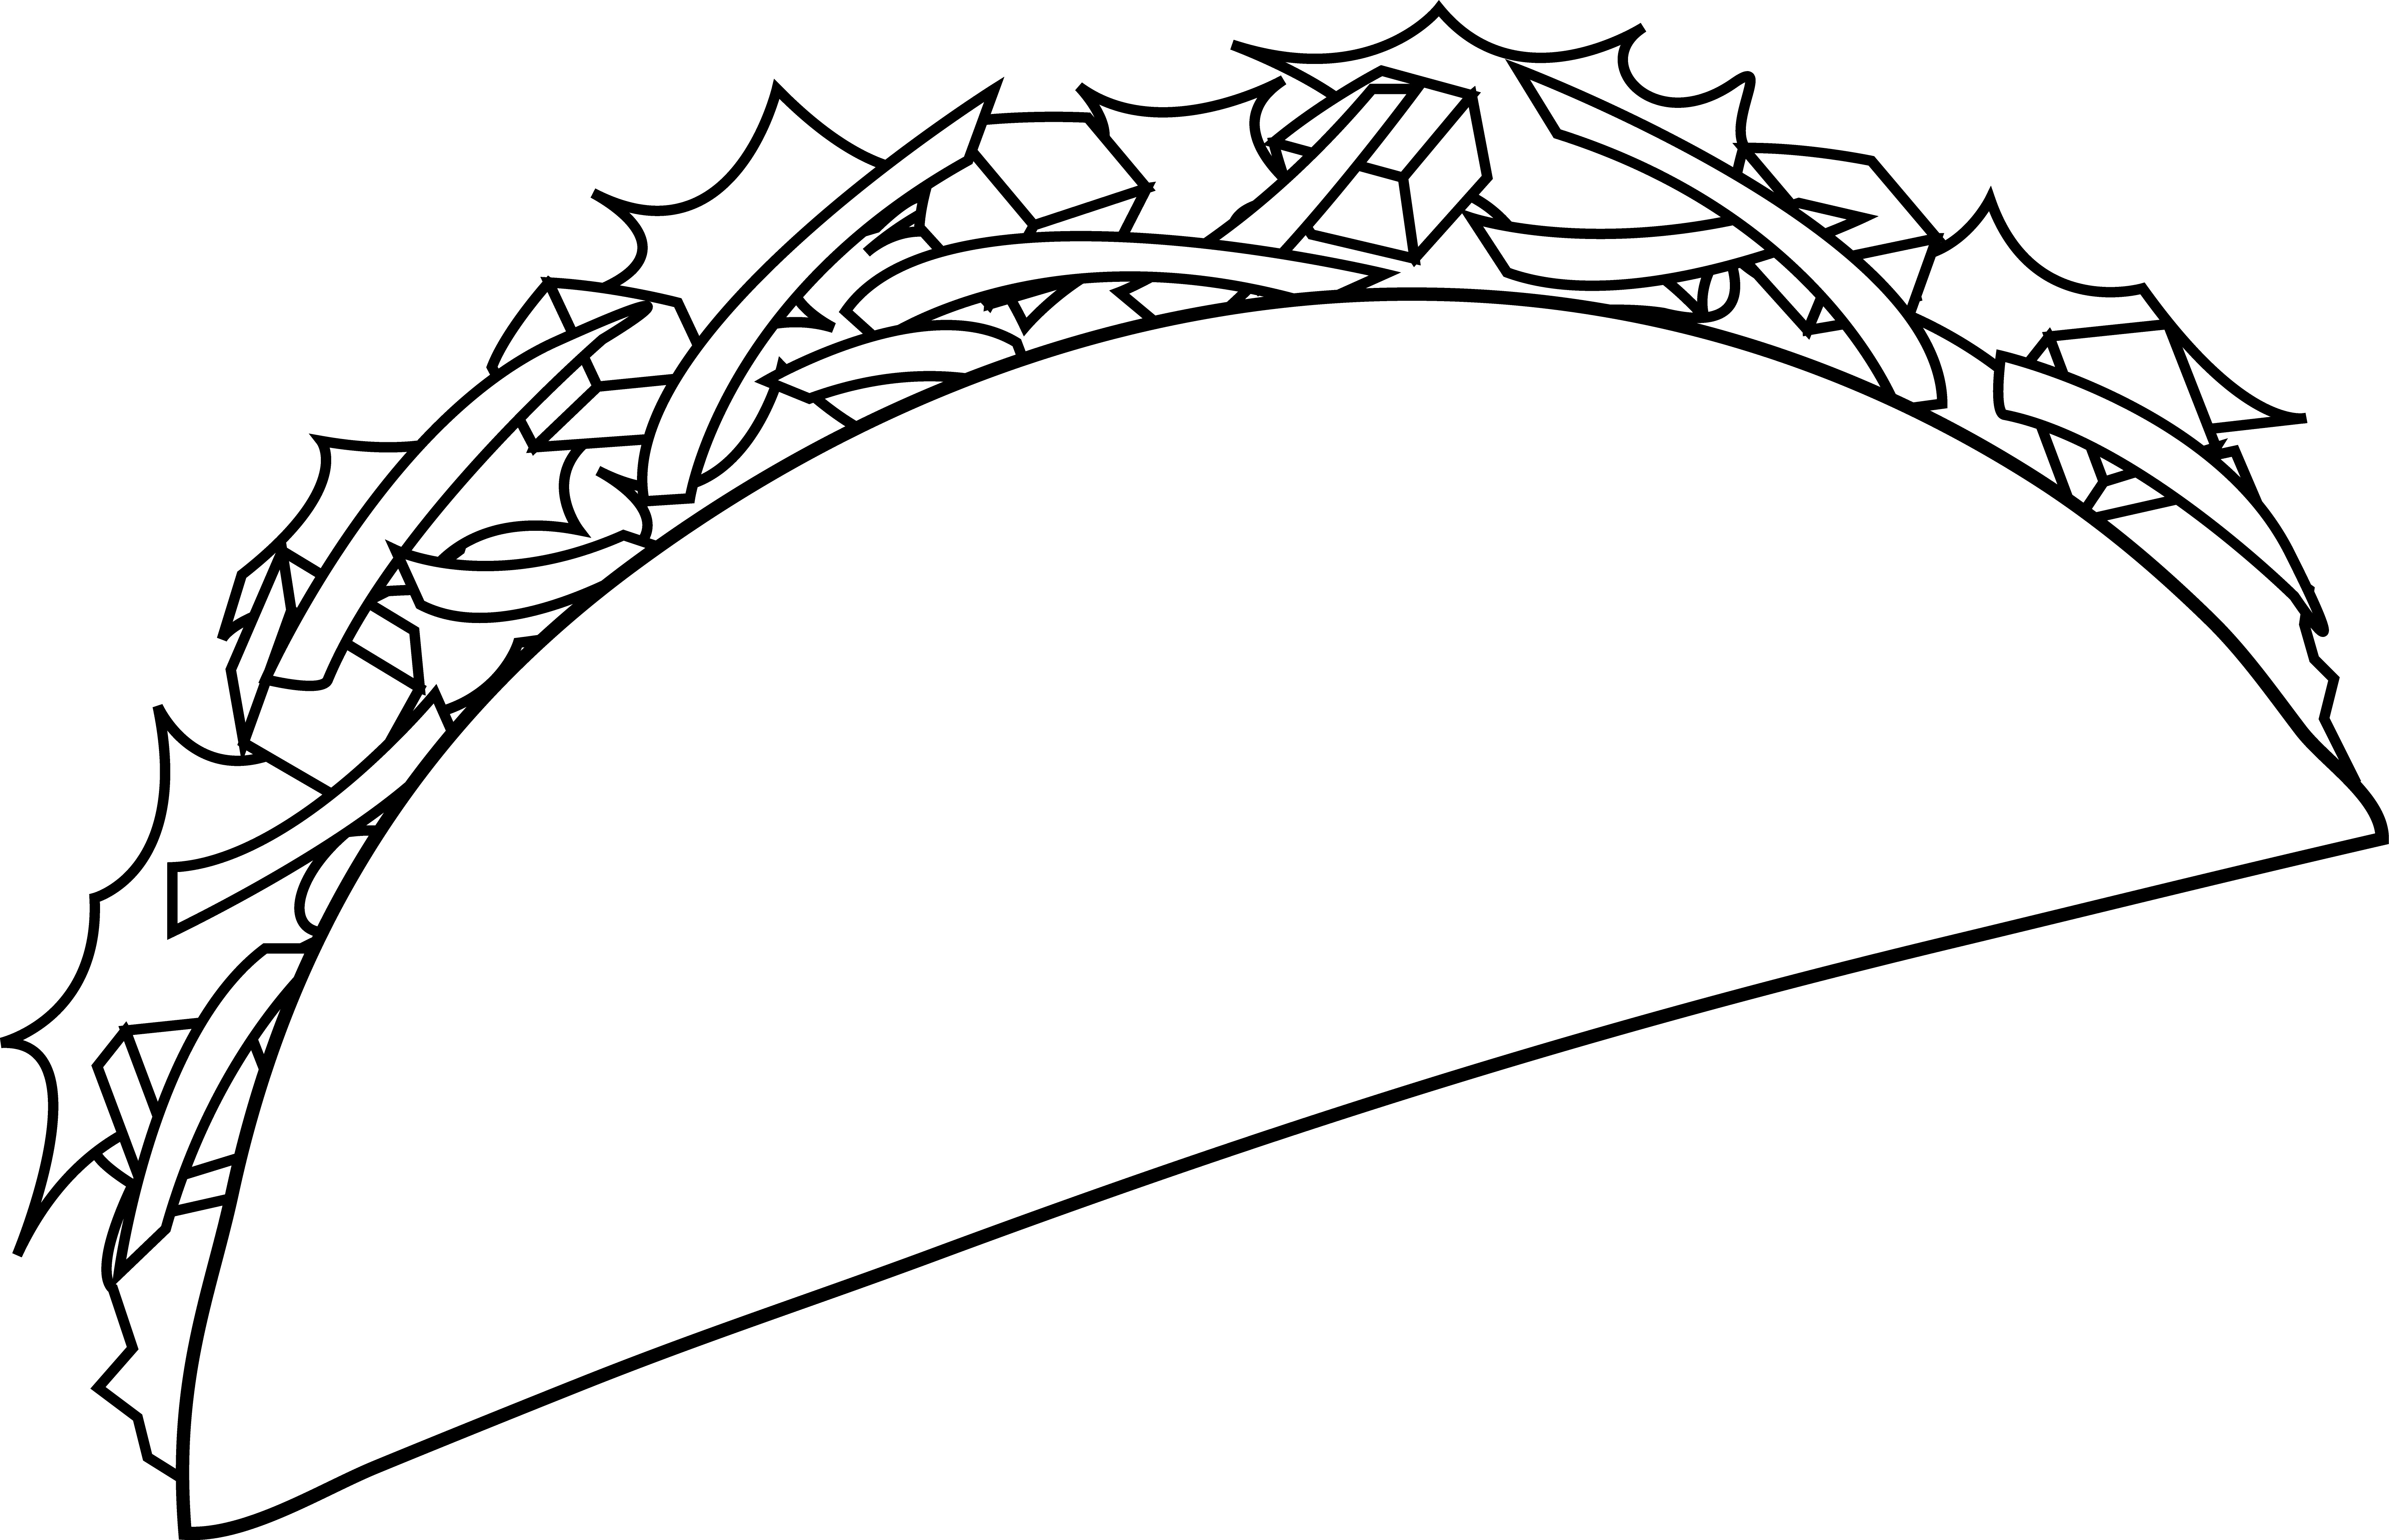 Taco clipart black and white. Free pics of tacos